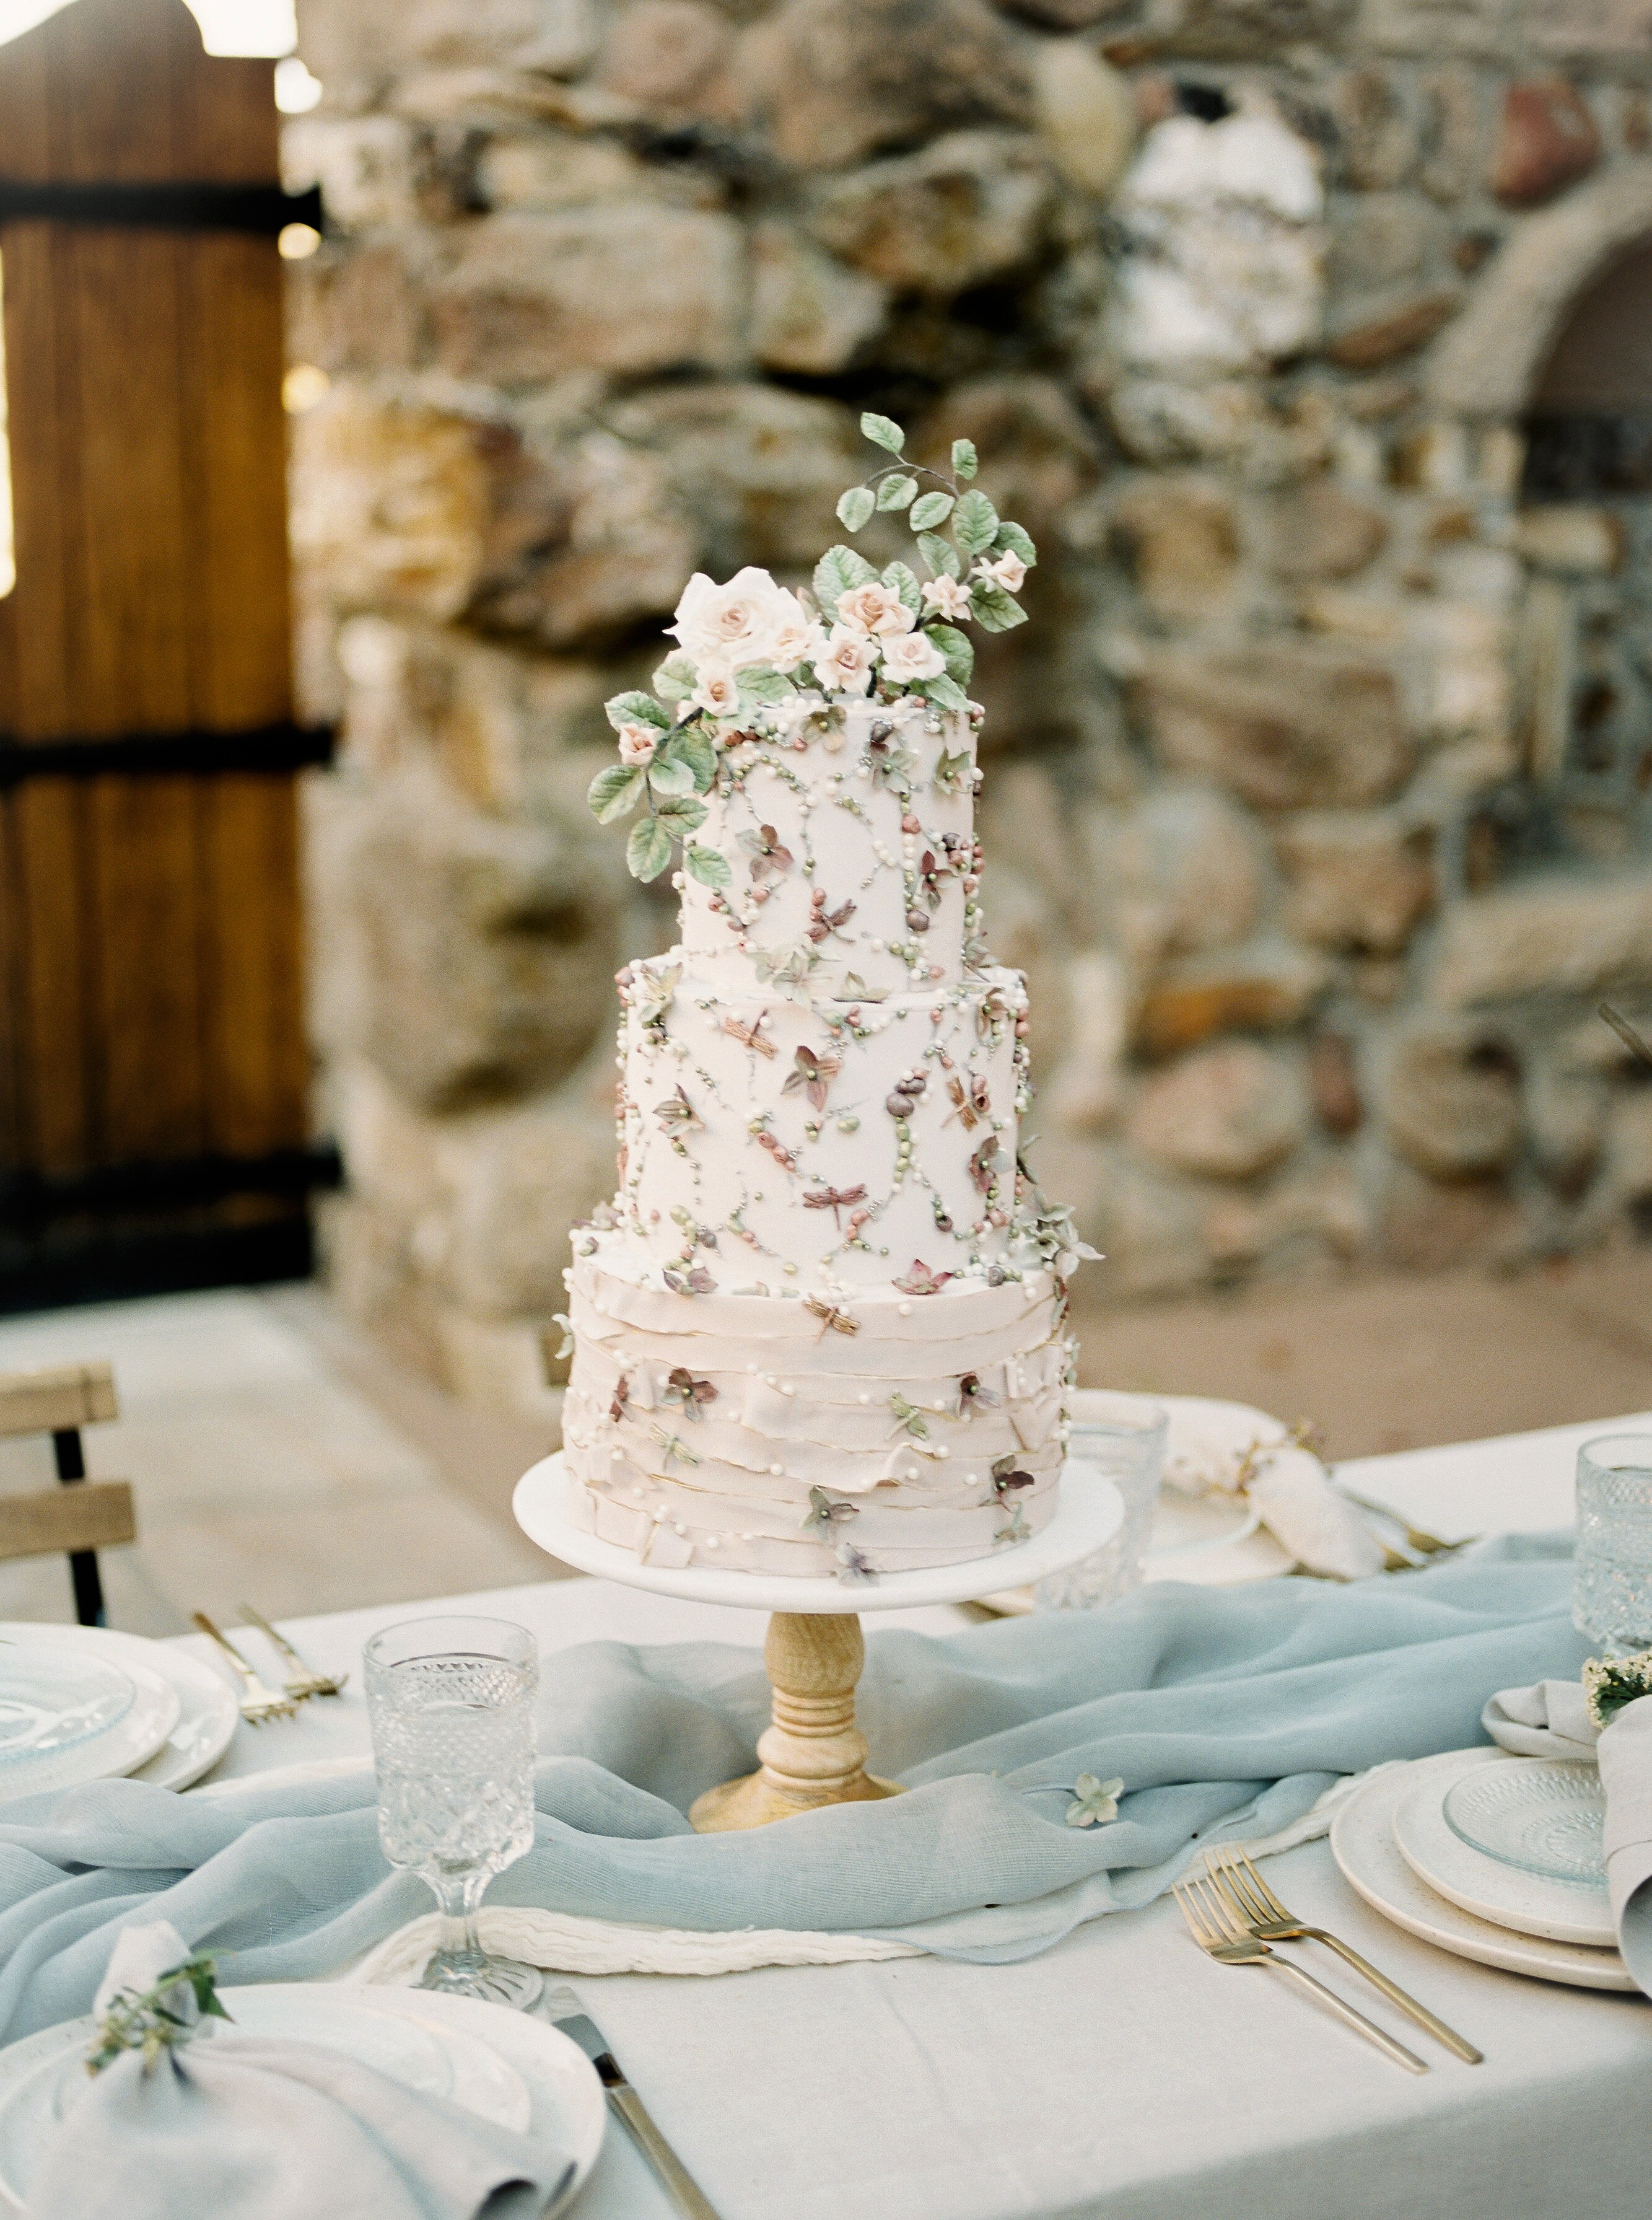 From Start To Finish Here S How Wedding Cakes Are Made Martha